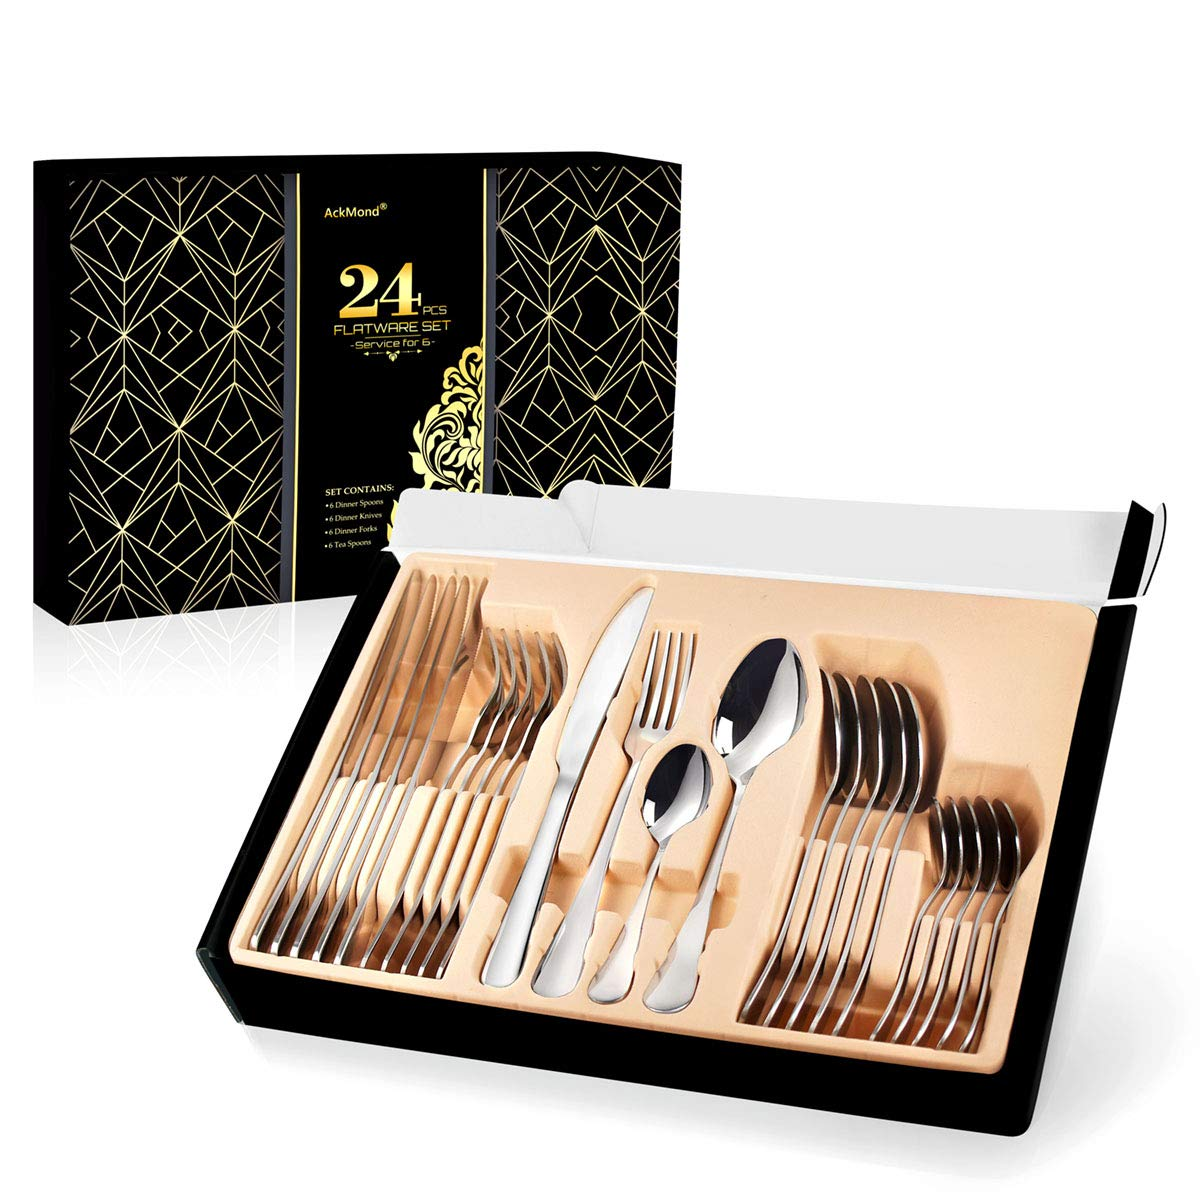 AckMond 24-piece Stainless-steel Cutlery Set Flatware Set Tableware Dinnerware Silverware knife fork spoon, with Gift Box Service for 6